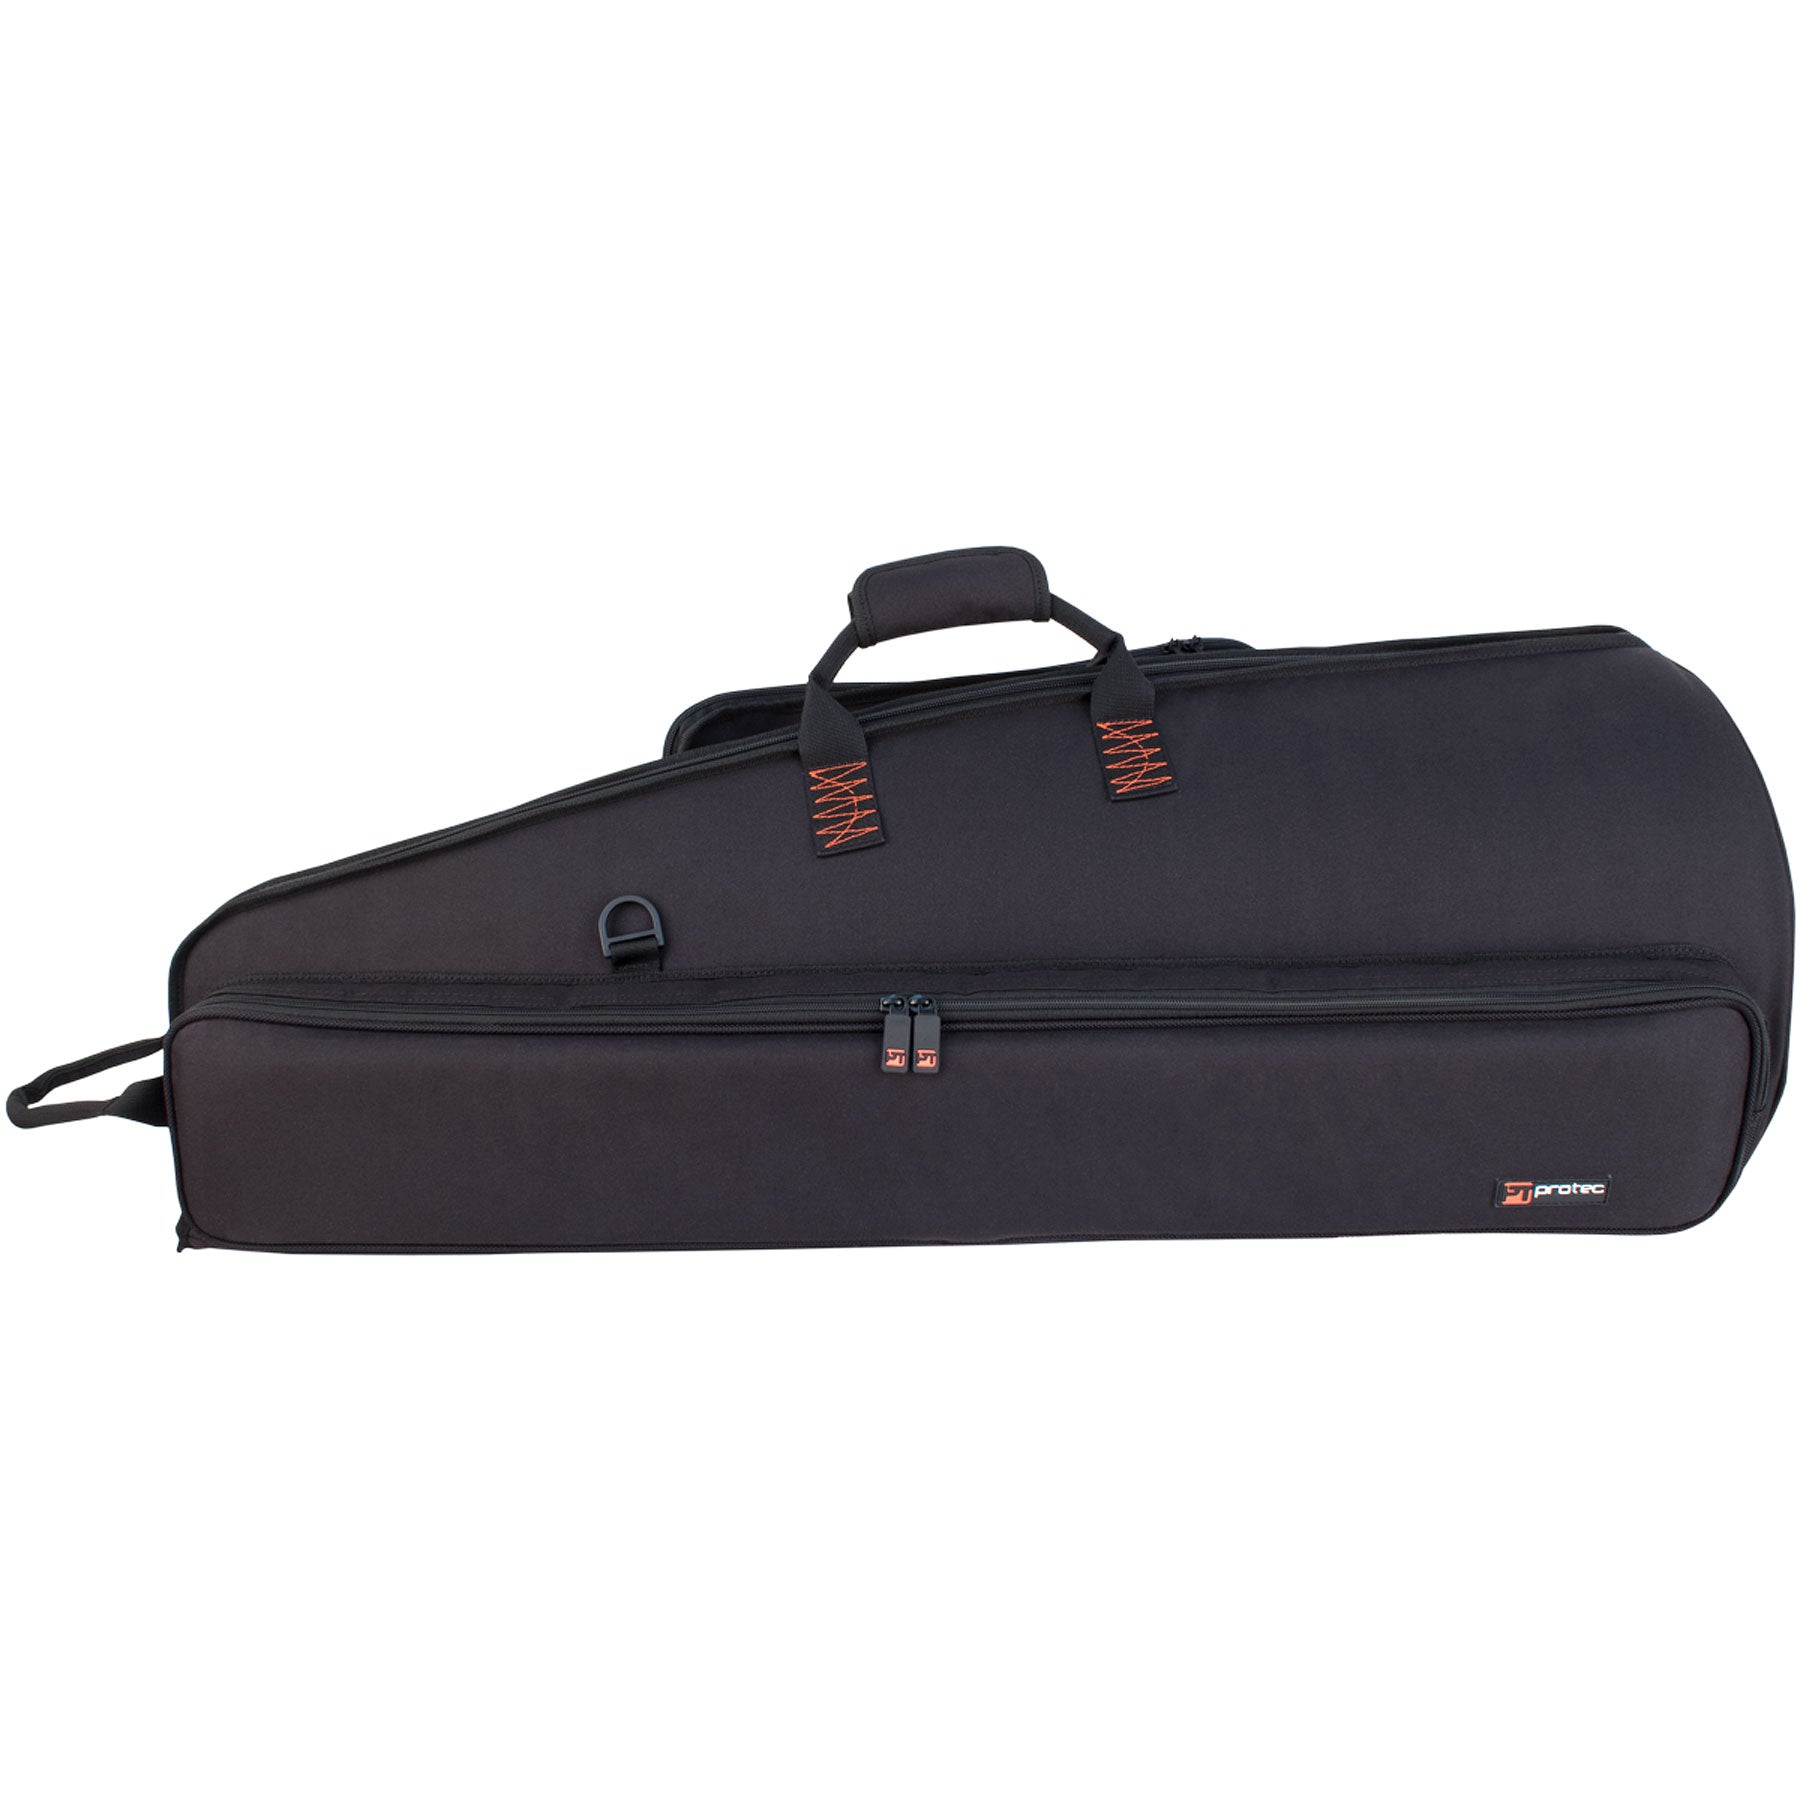 PROTEC Bass Trombone Gig Bag - Explorer Series